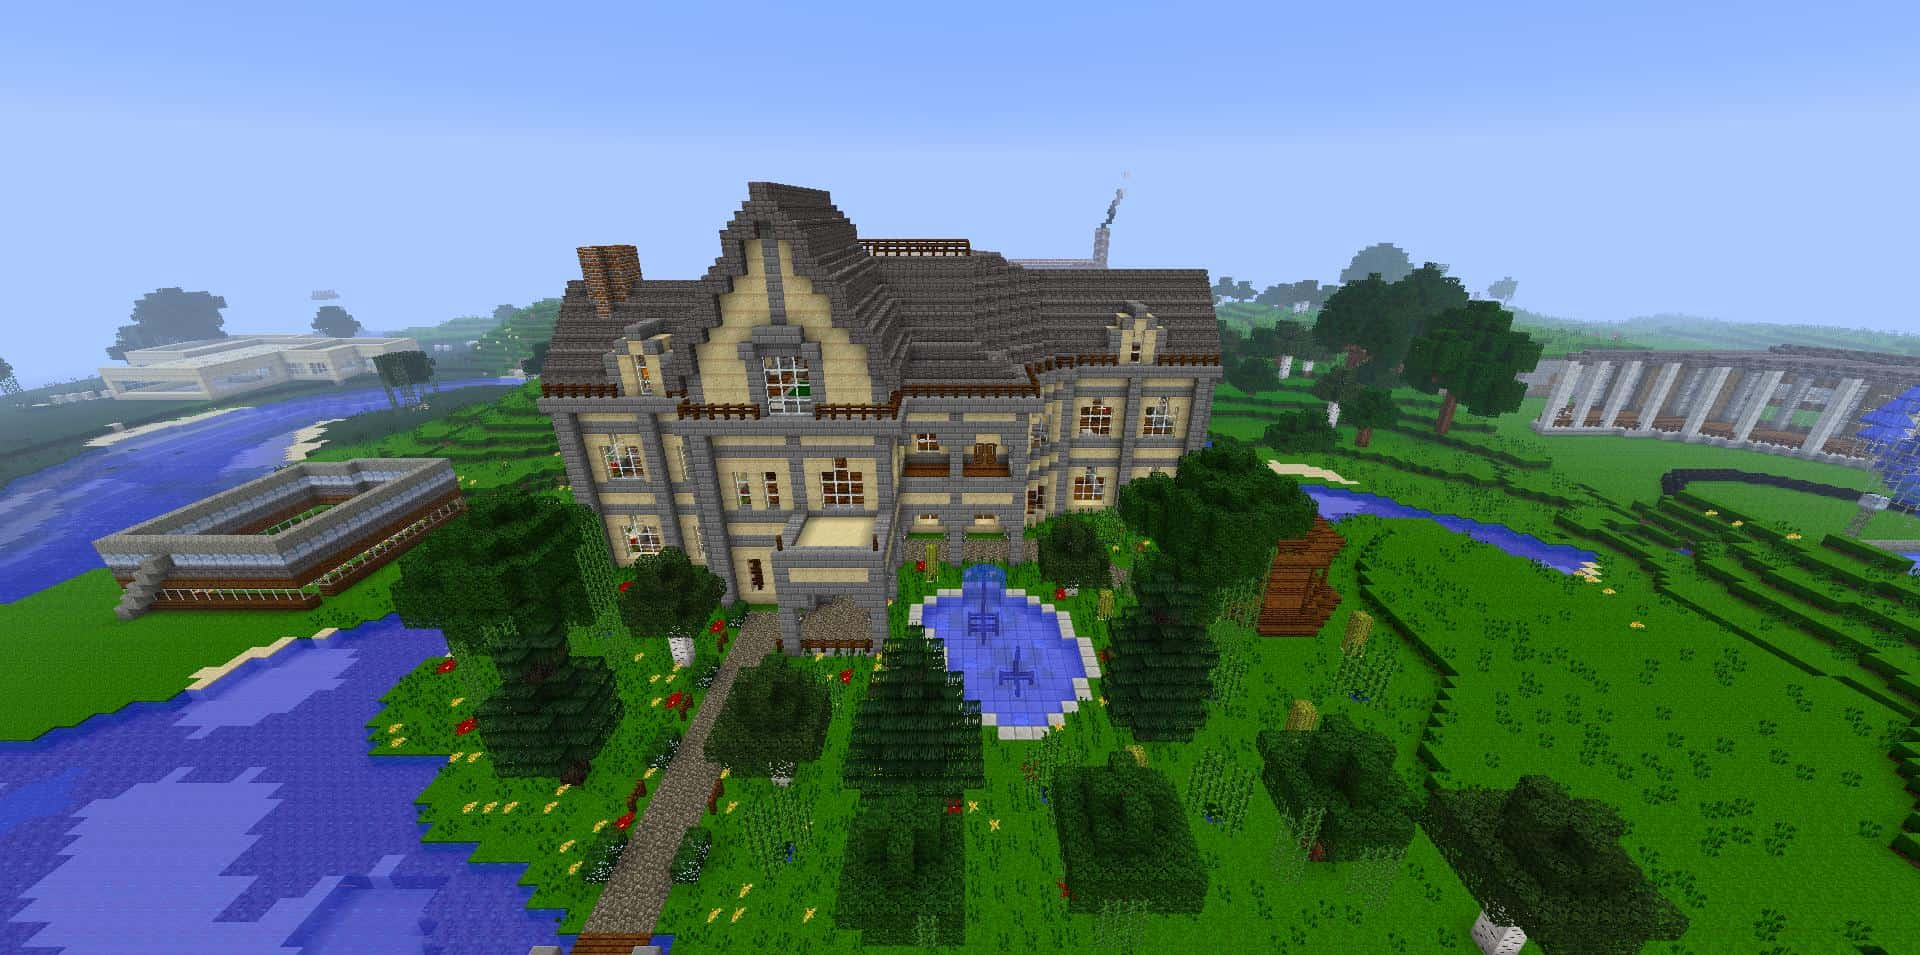 minecraft-big-house-1